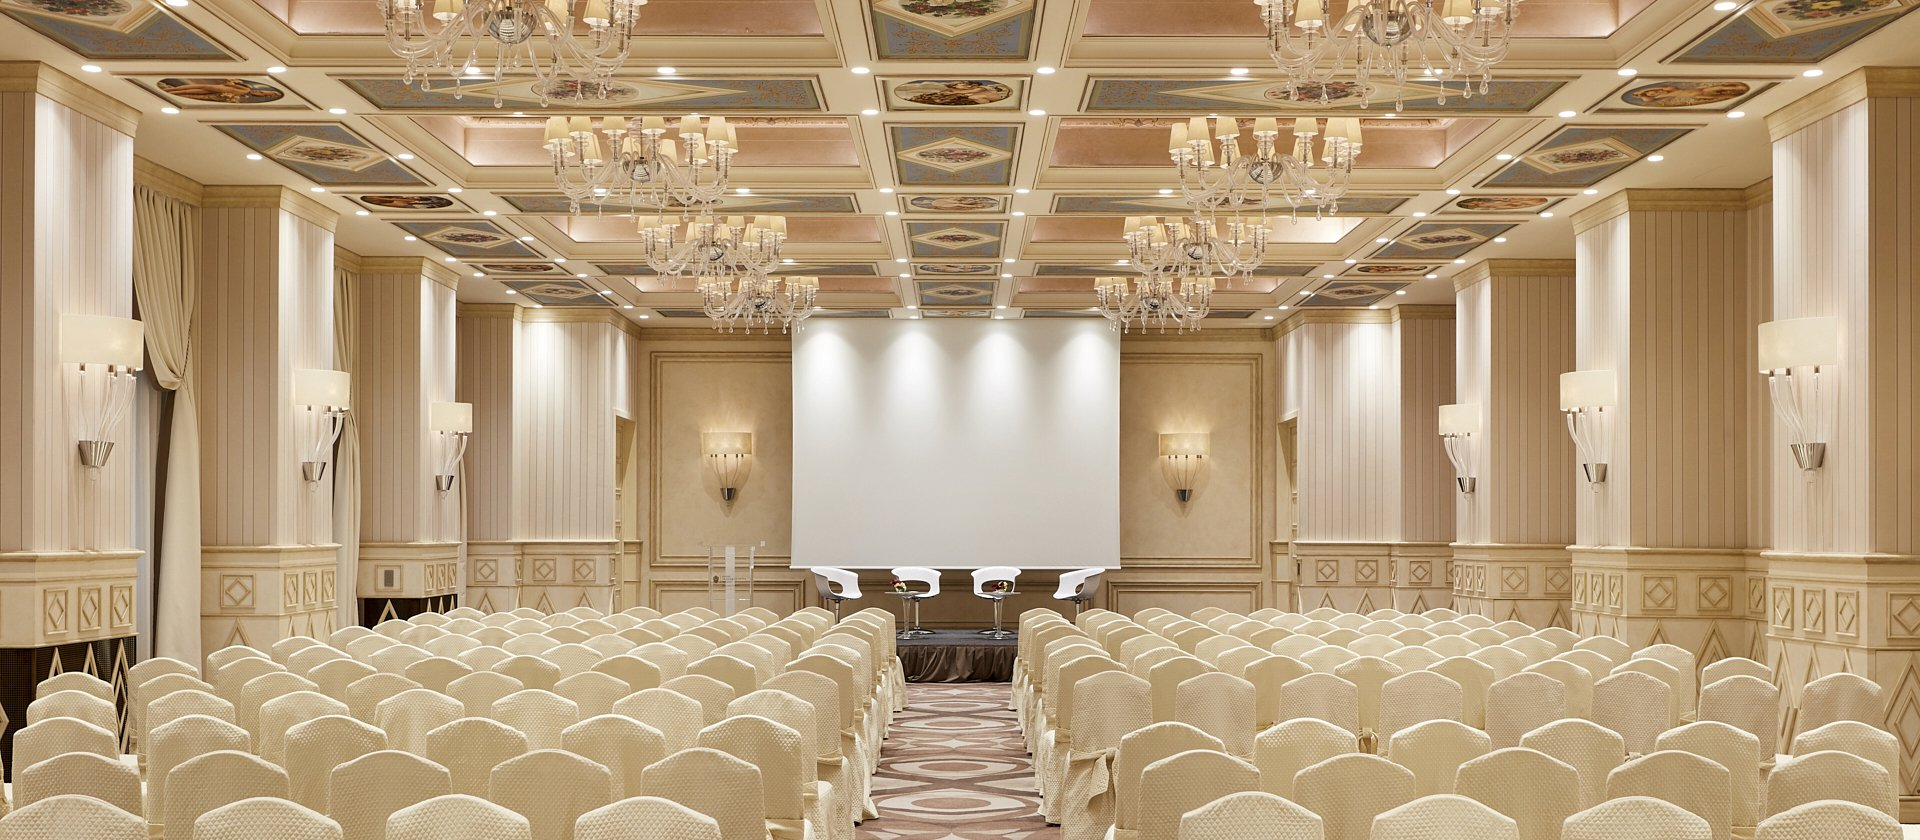 Hotel Principe di Savoia, event spaces, Galilei B C